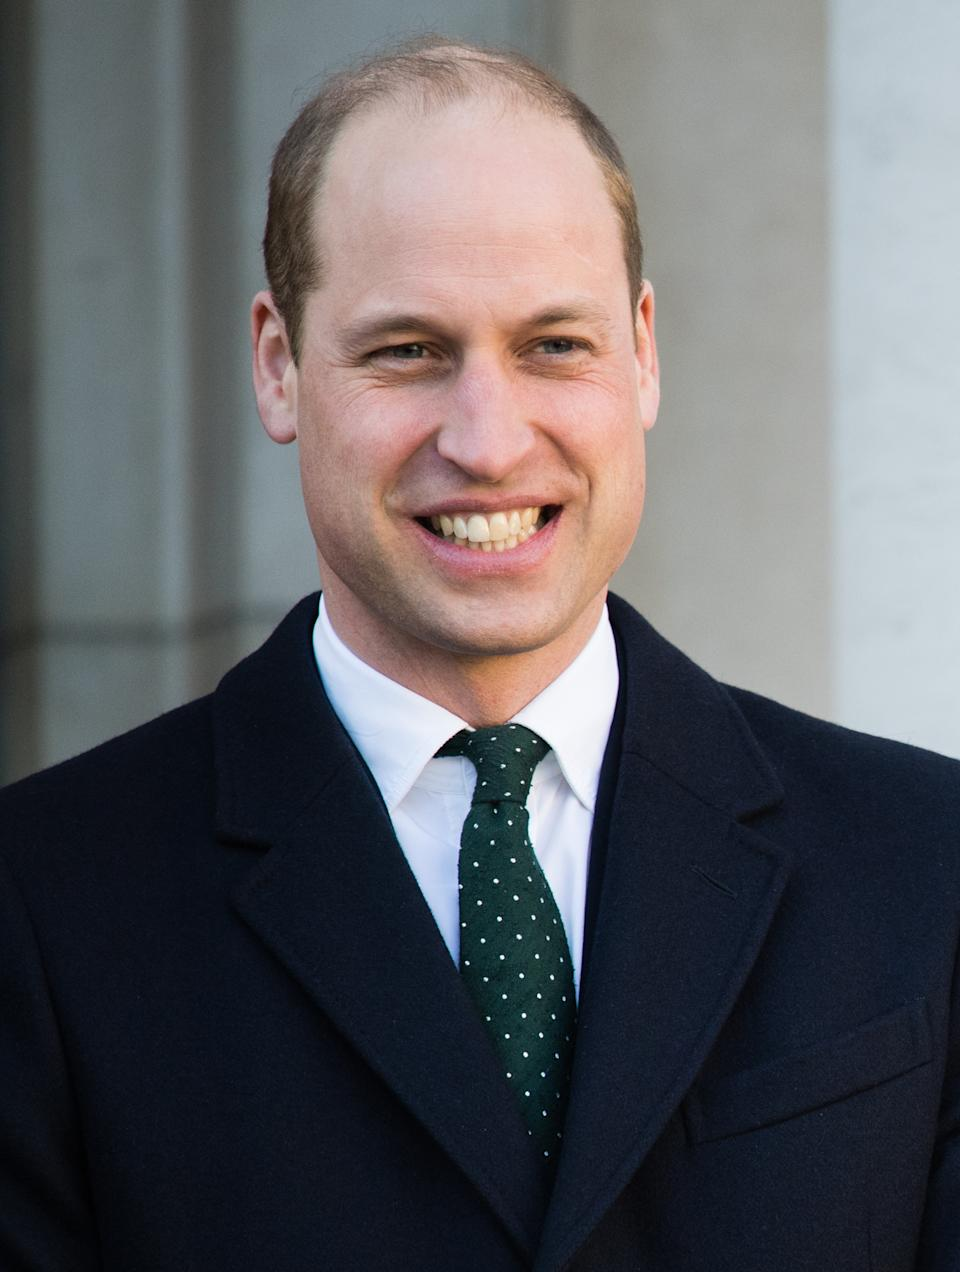 DUBLIN, IRELAND - MARCH 03:  Prince William, Duke of Cambridge meets Ireland's Taoiseach Leo Varadkar and his partner Matthew Barrett on March 03, 2020 in Dublin, Ireland. The Duke and Duchess of Cambridge are undertaking an official visit to Ireland between Tuesday 3rd March and Thursday 5th March, at the request of the Foreign and Commonwealth Office. (Photo by Samir Hussein/WireImage)